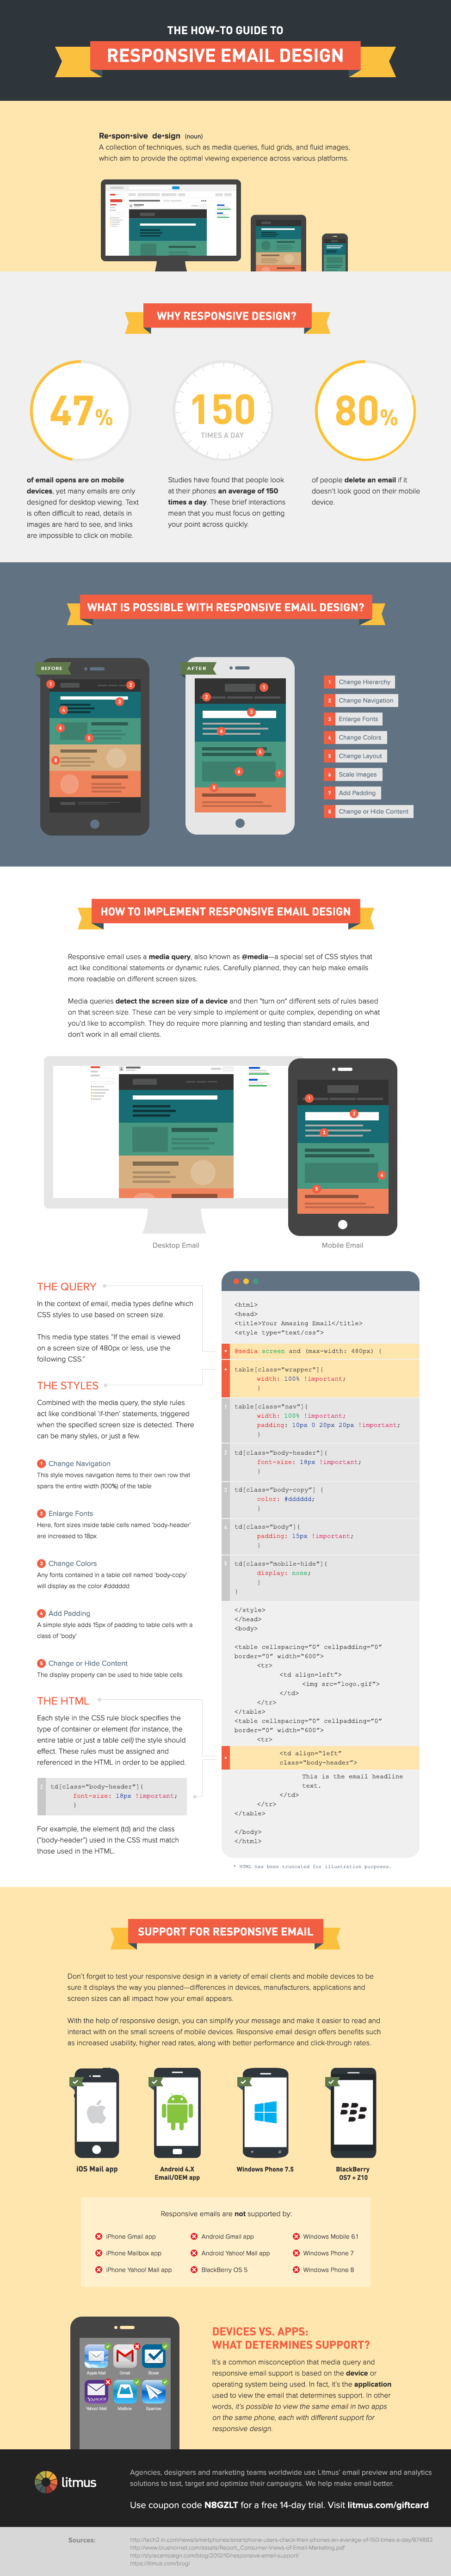 How To Create A Responsive Email Design Infographic